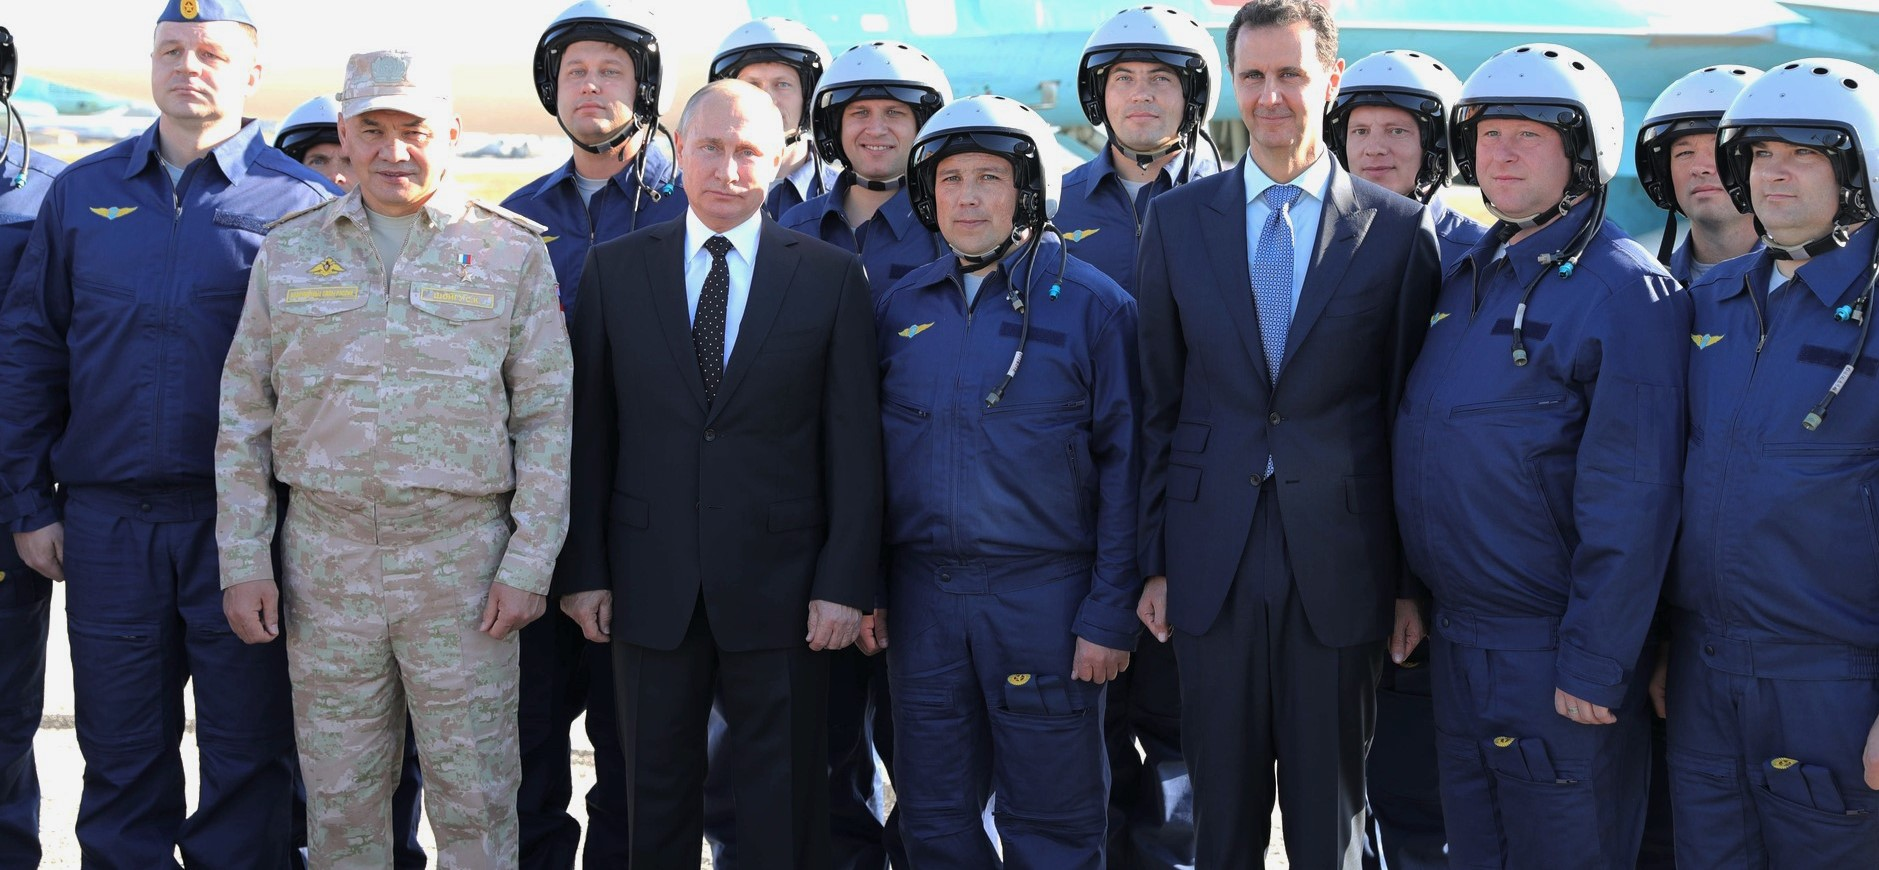 Russian President Vladimir Putin and Syrian President Bashar al-Assad at the Khmeimim air base in Syria, December 2017 (Photo: Kremlin.ru)